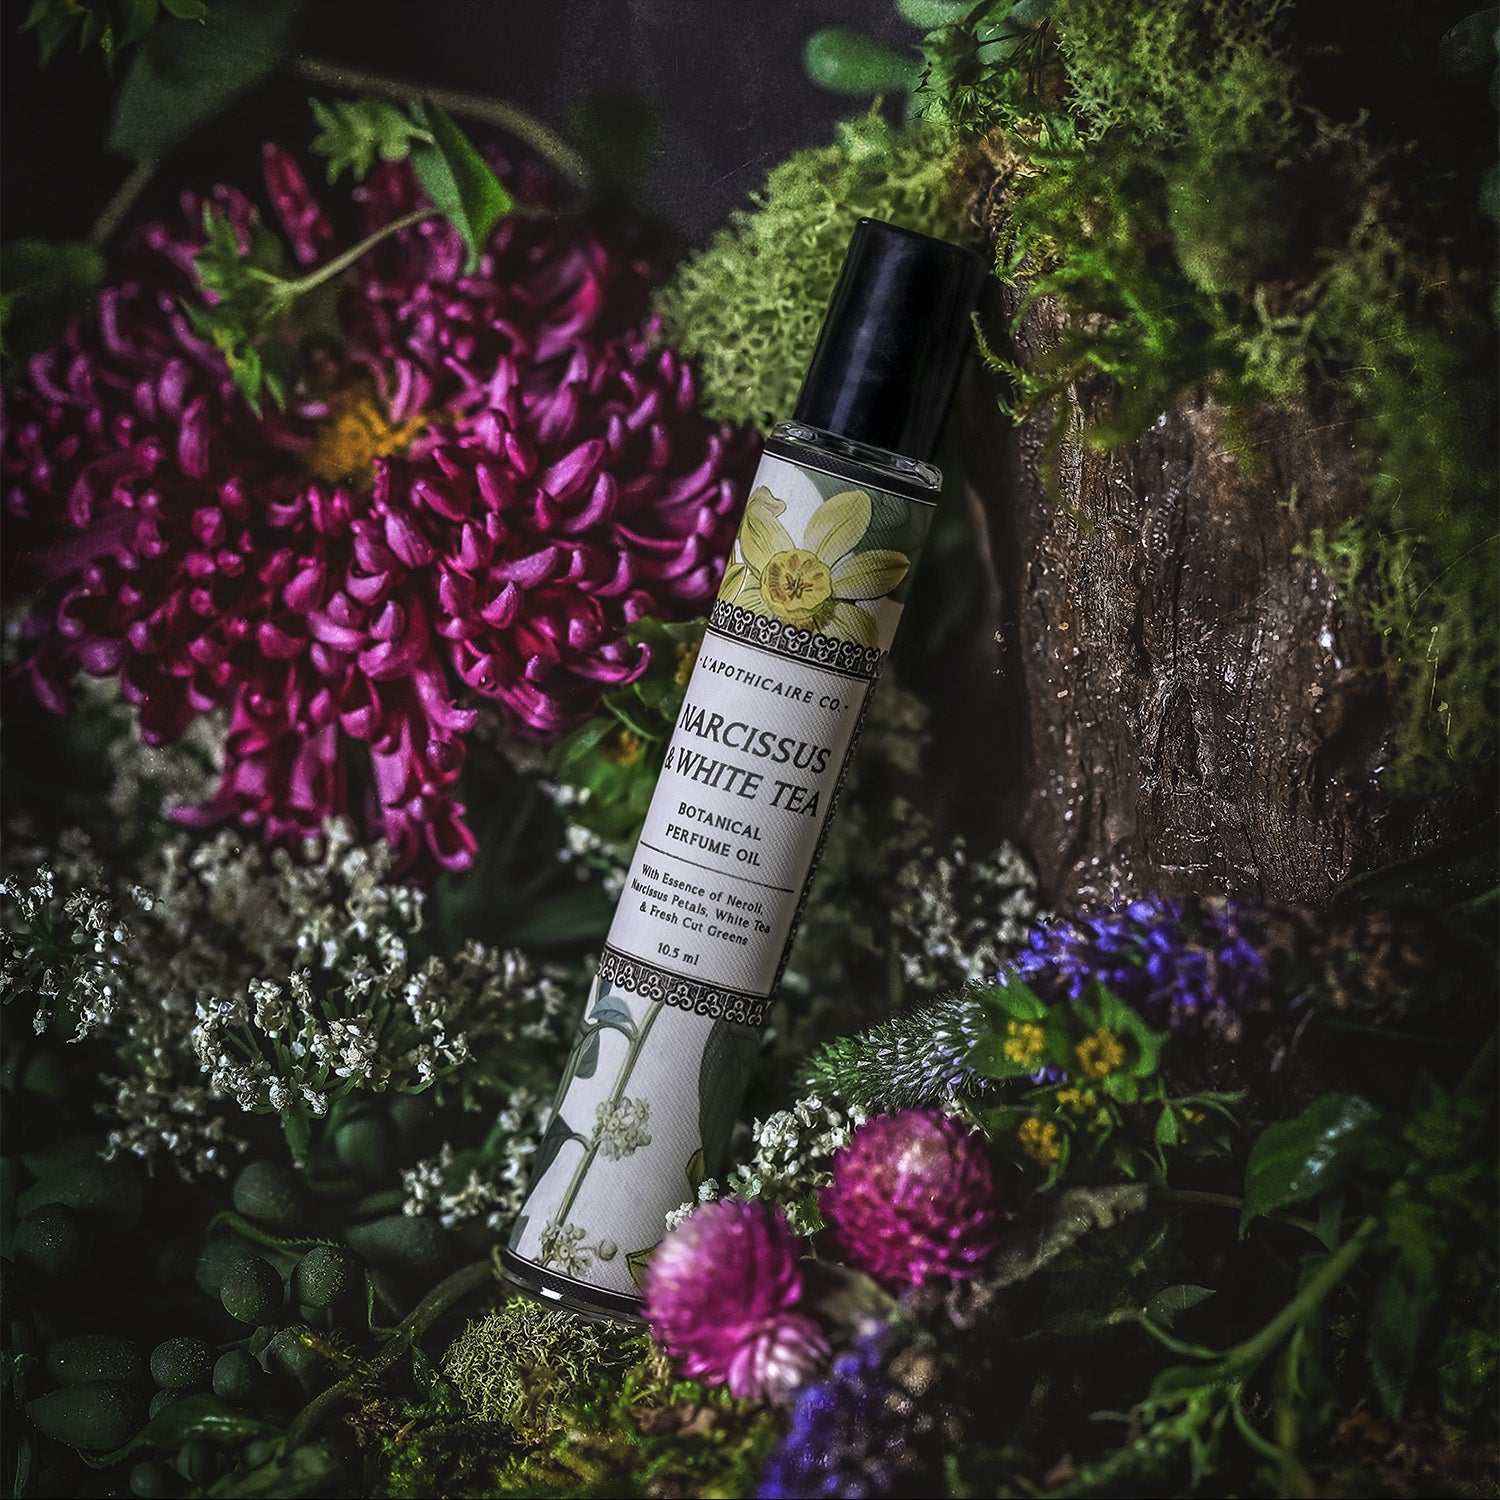 L'apothicaire Co. - BOTANICA | Narcissus + White Tea | Perfume Oil